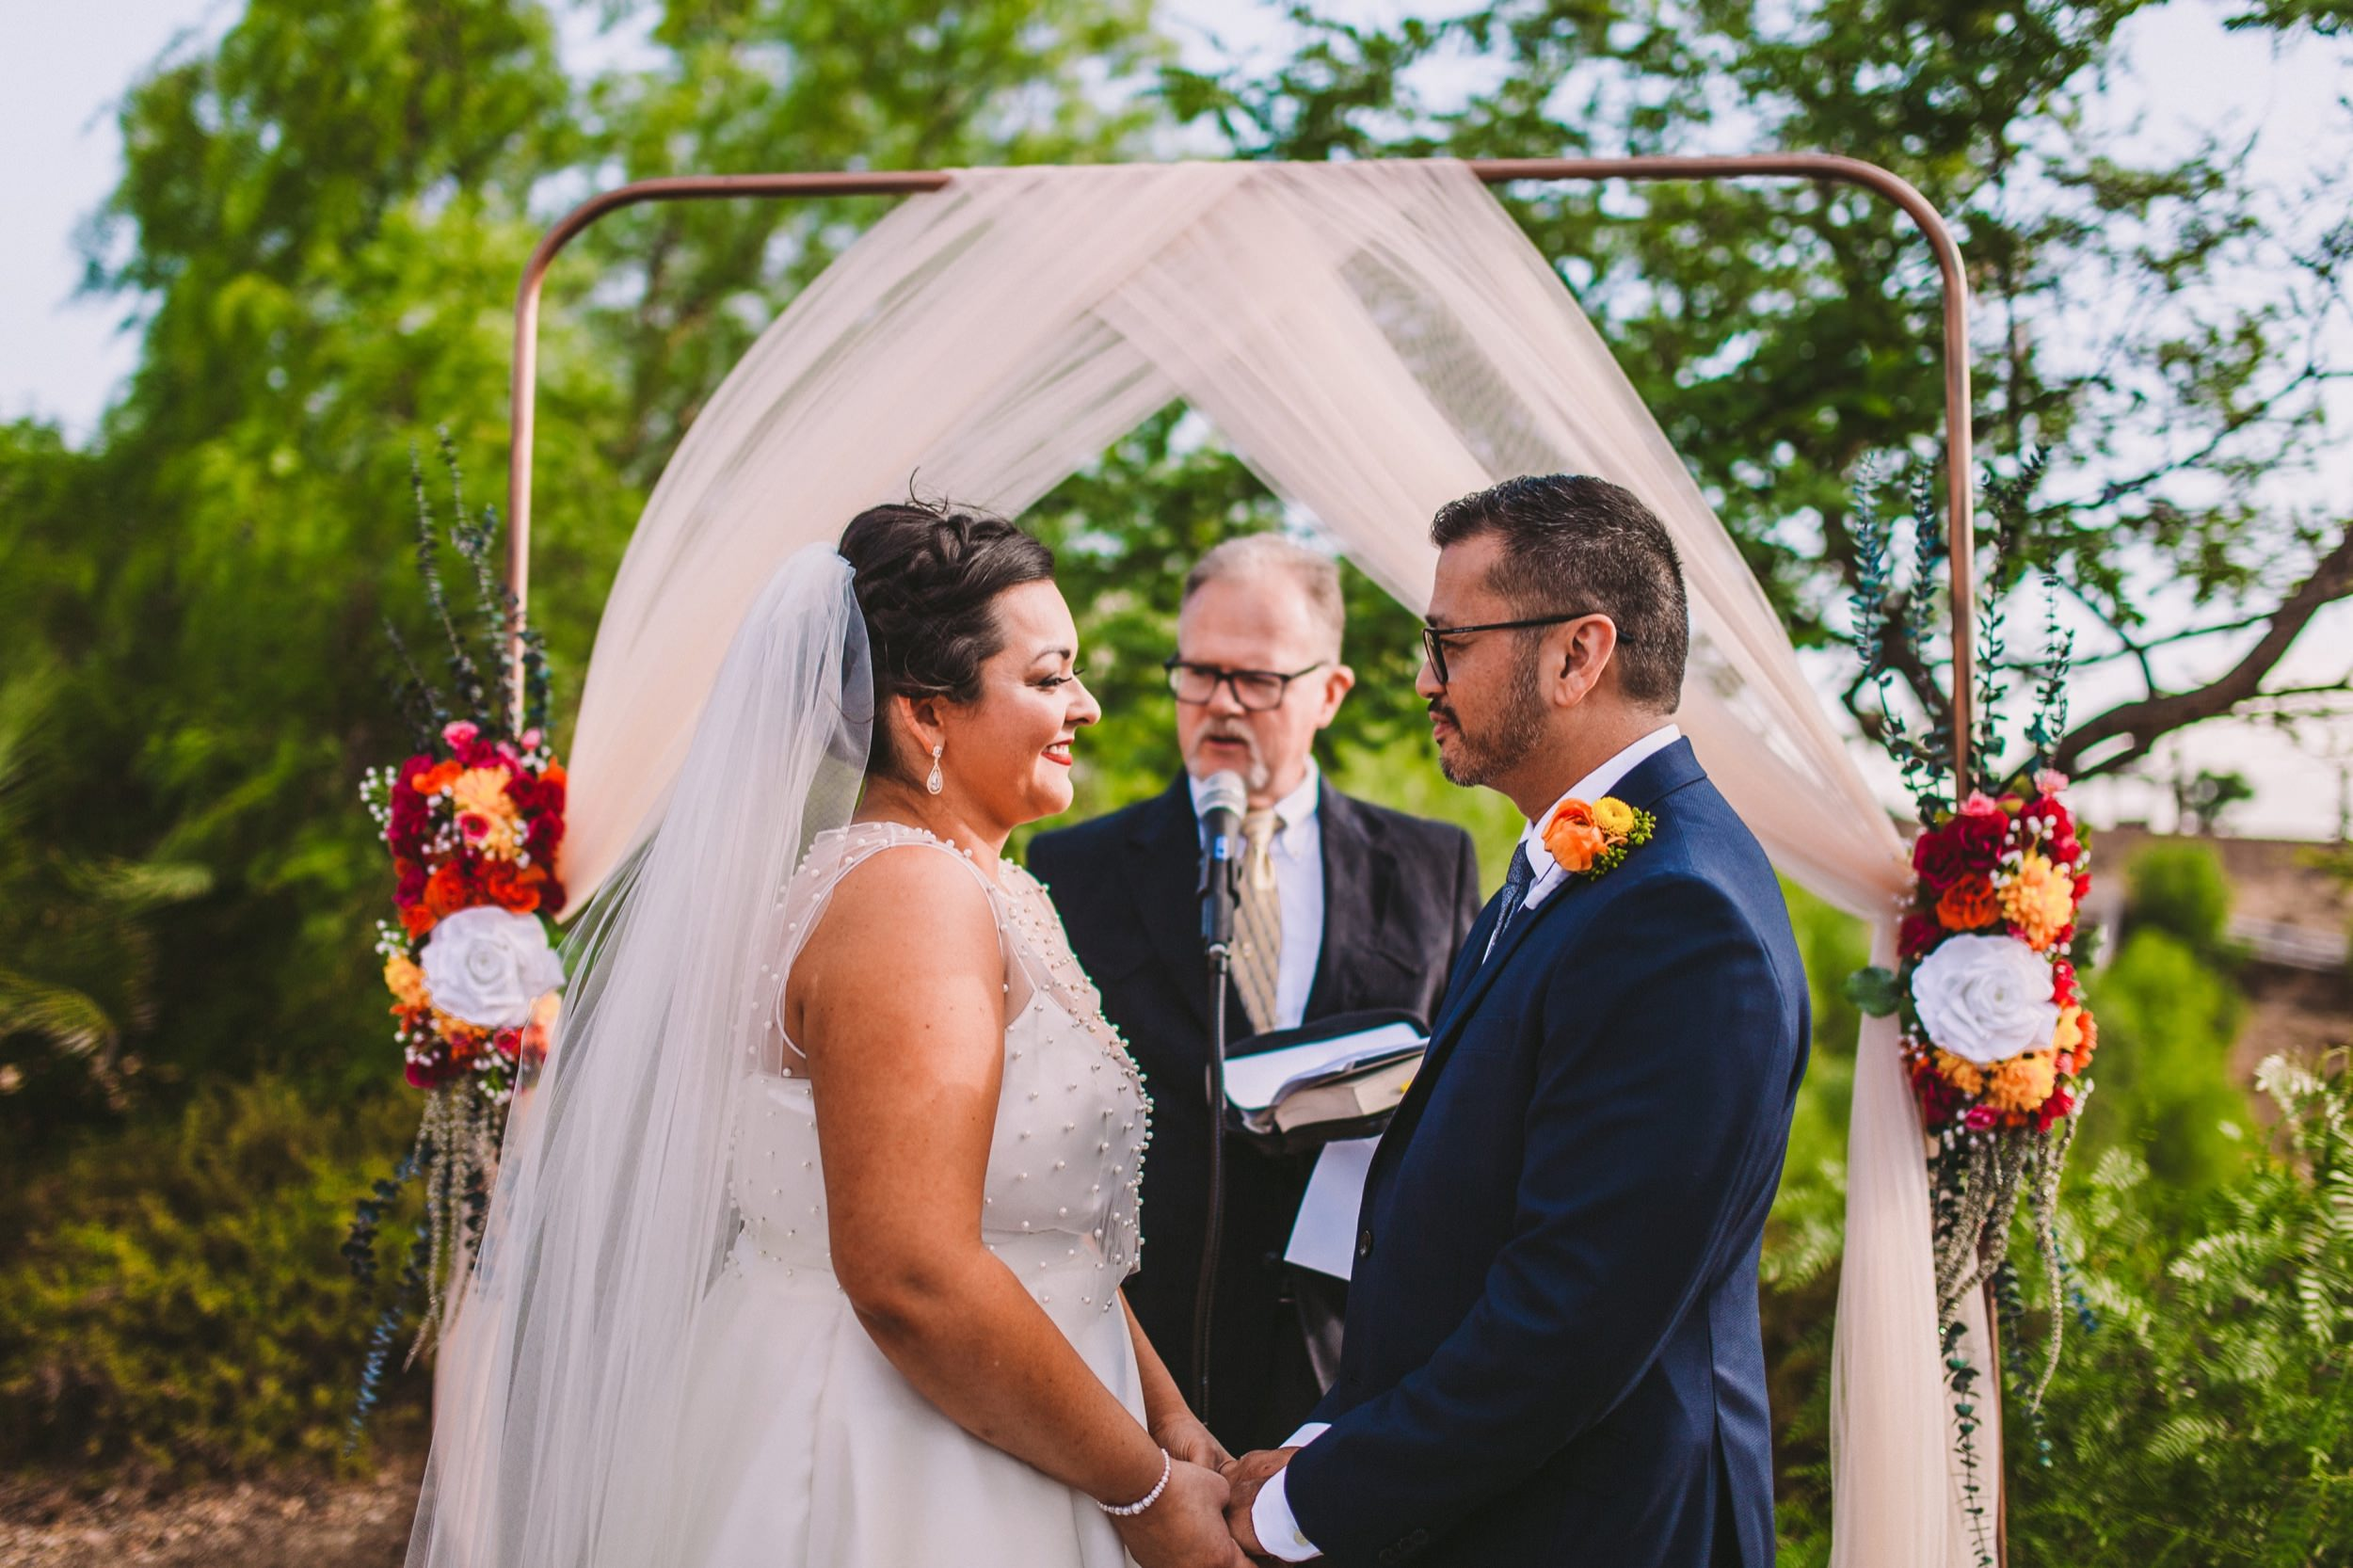 Intimate, Relaxed & Colorful Wedding Photography in Temecula-149.jpg